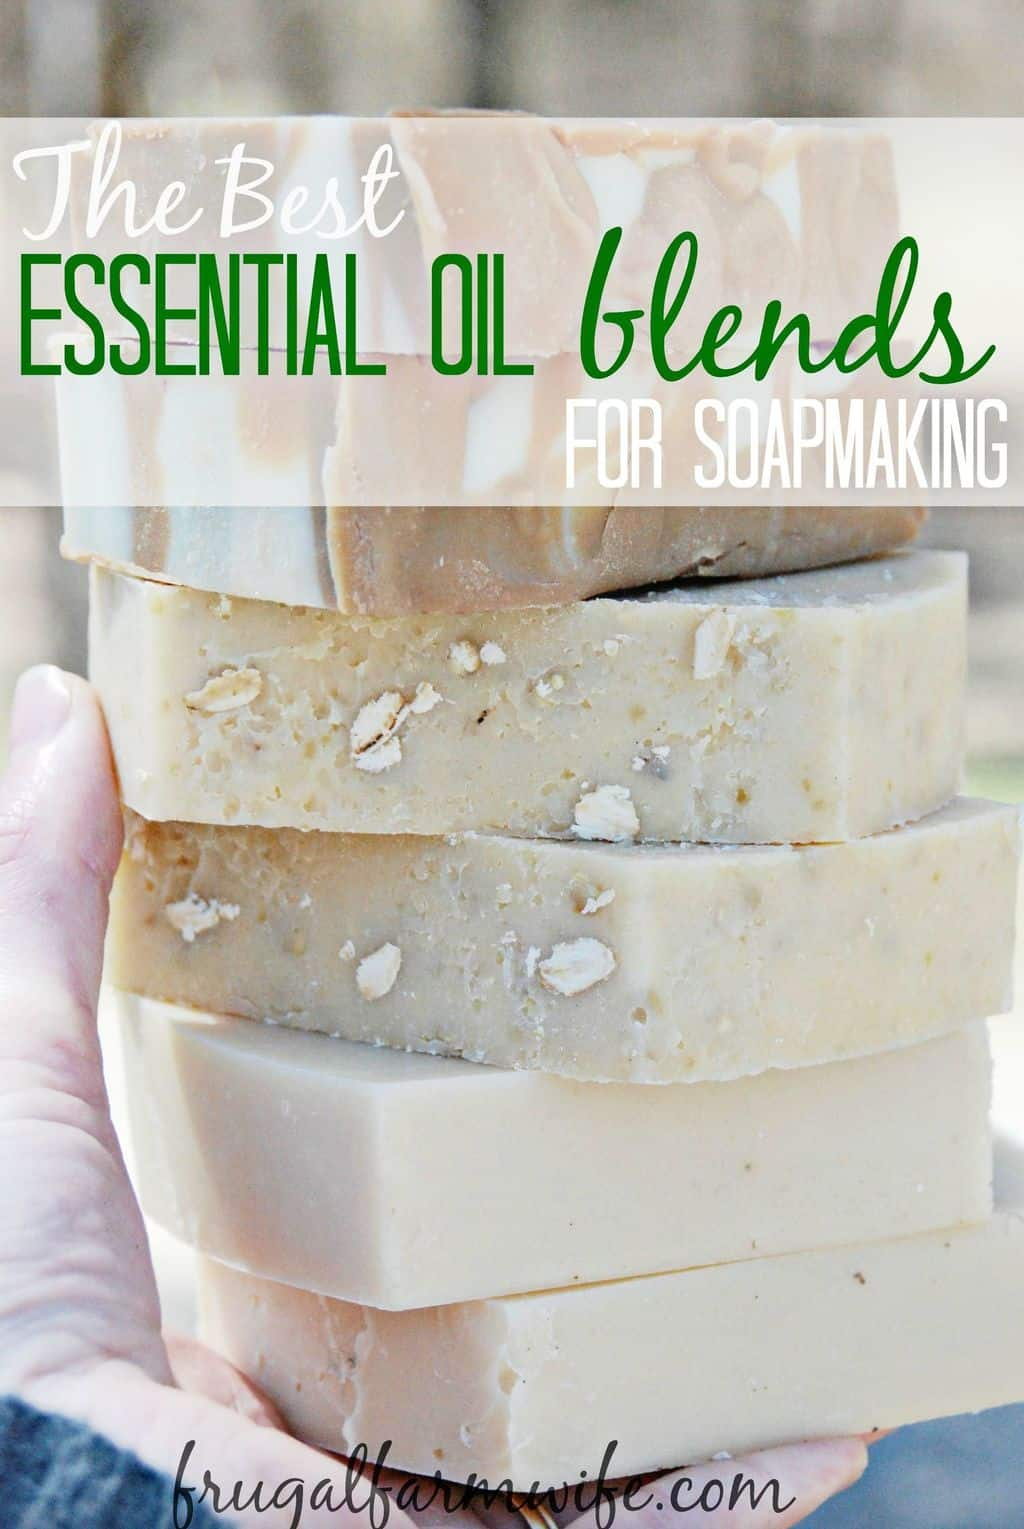 Diy Soap With Essential Oils The Best Essentail Oil Blends Recipes For Soap Making